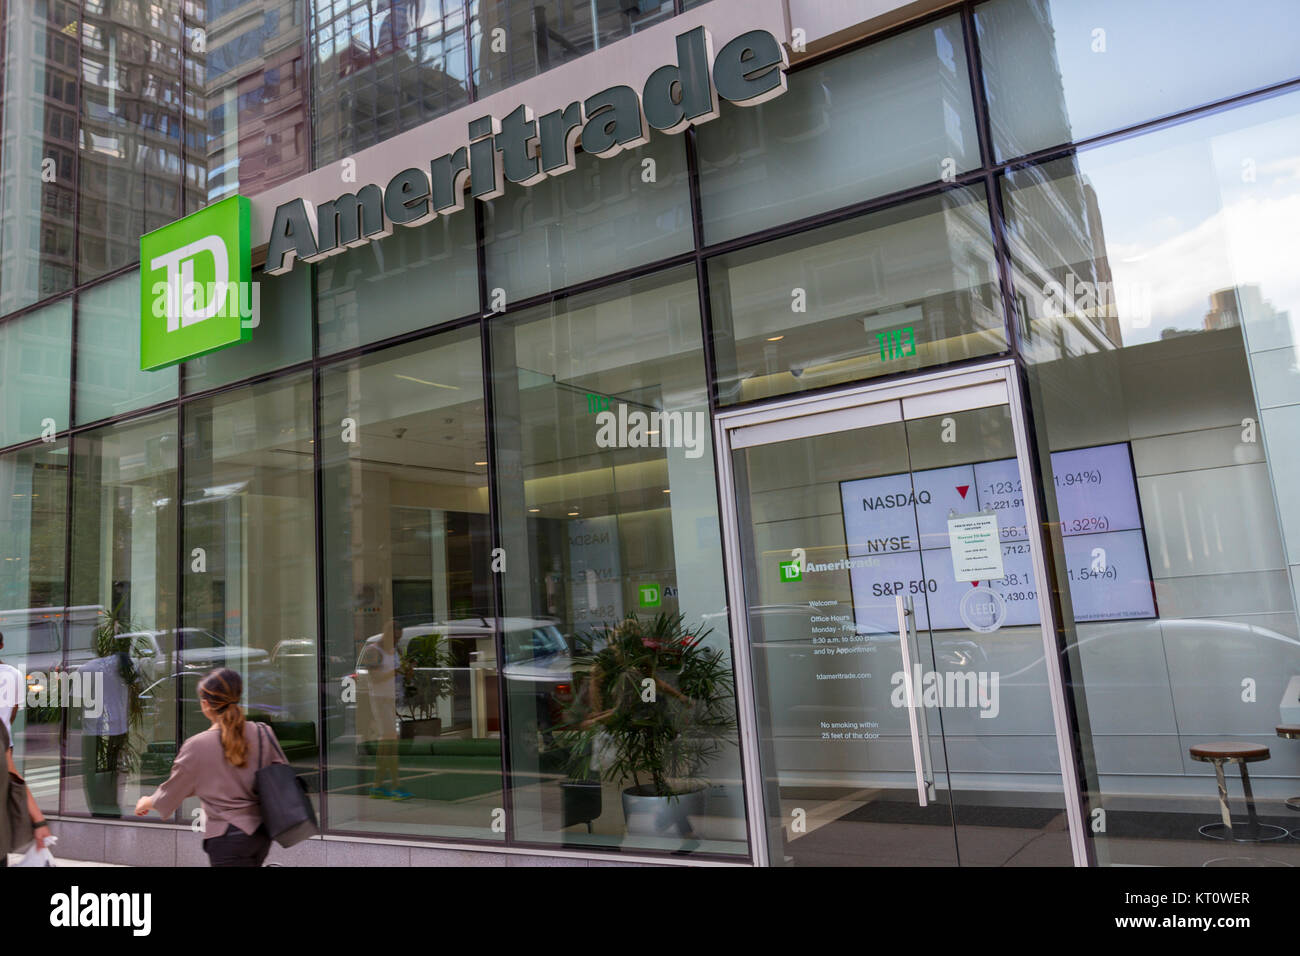 how to buy stock on td ameritrade